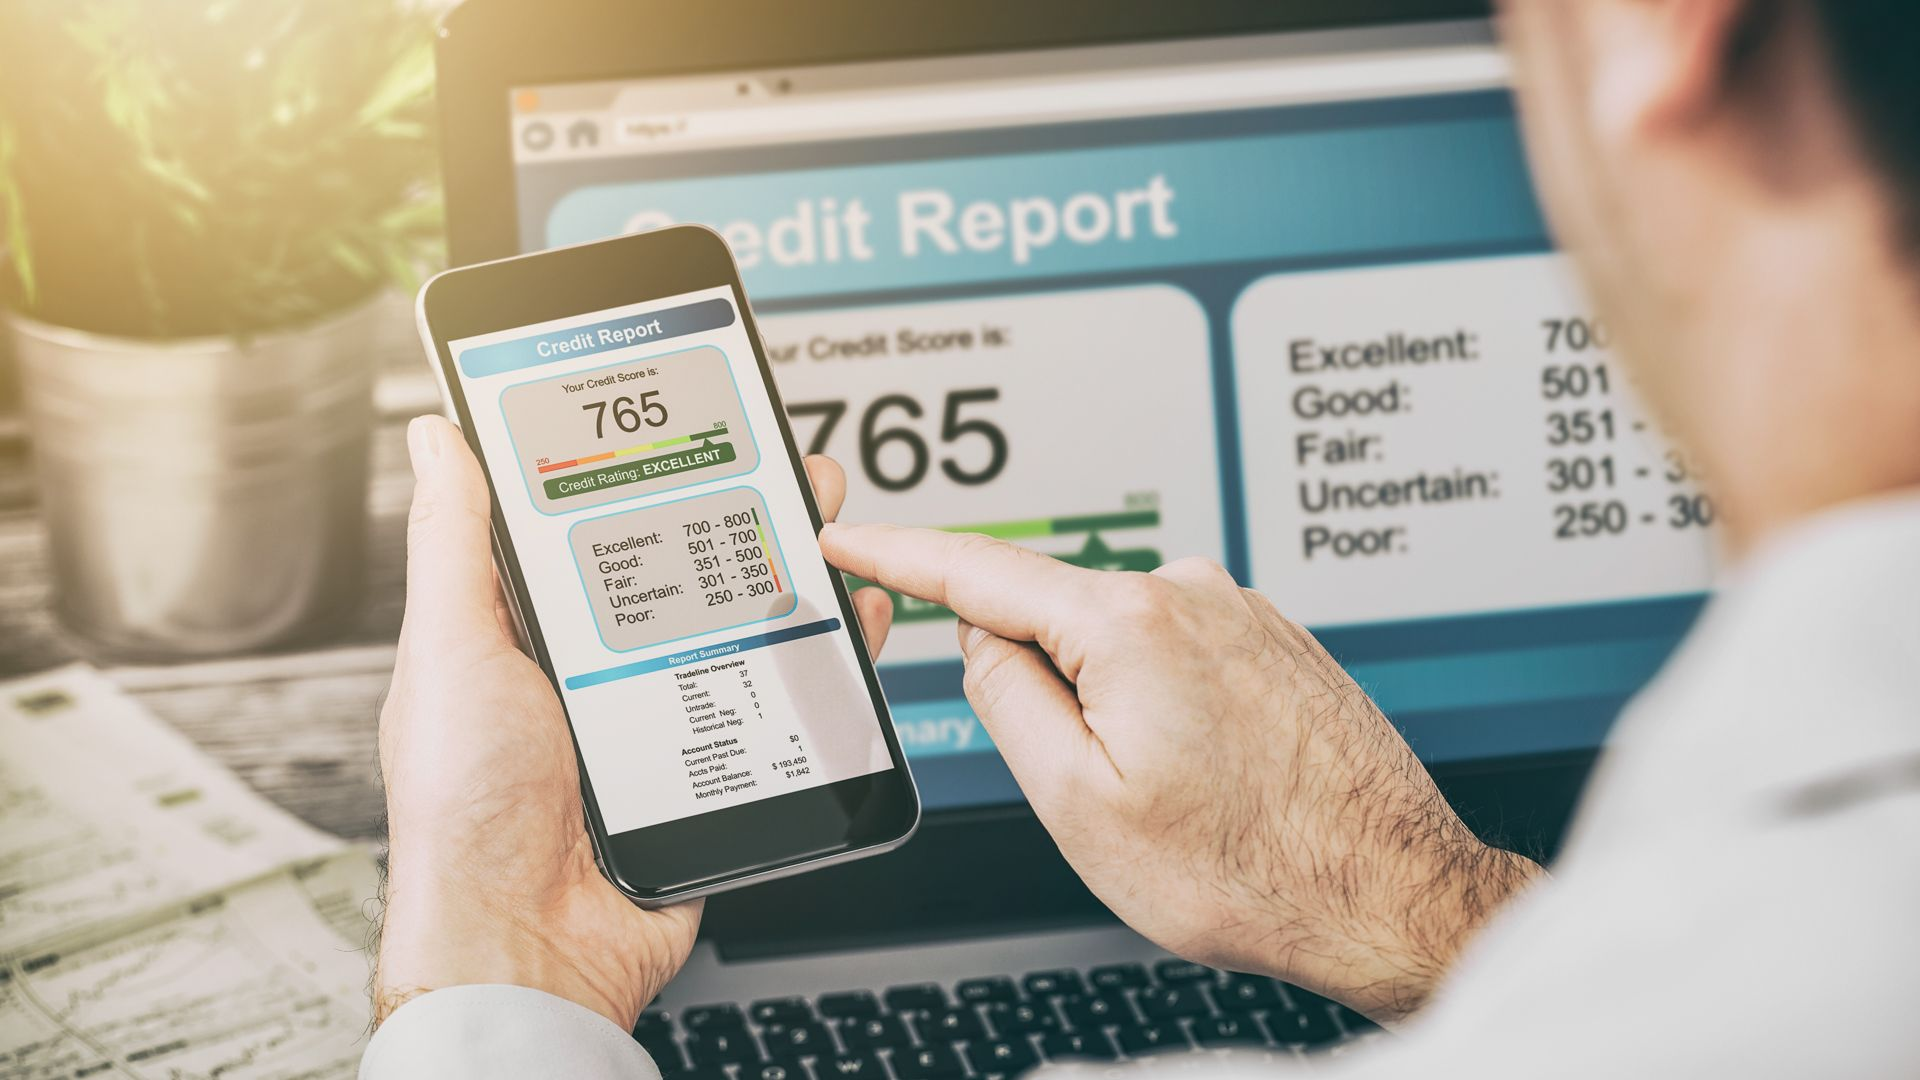 5 interesting facts about credit scores and reporting